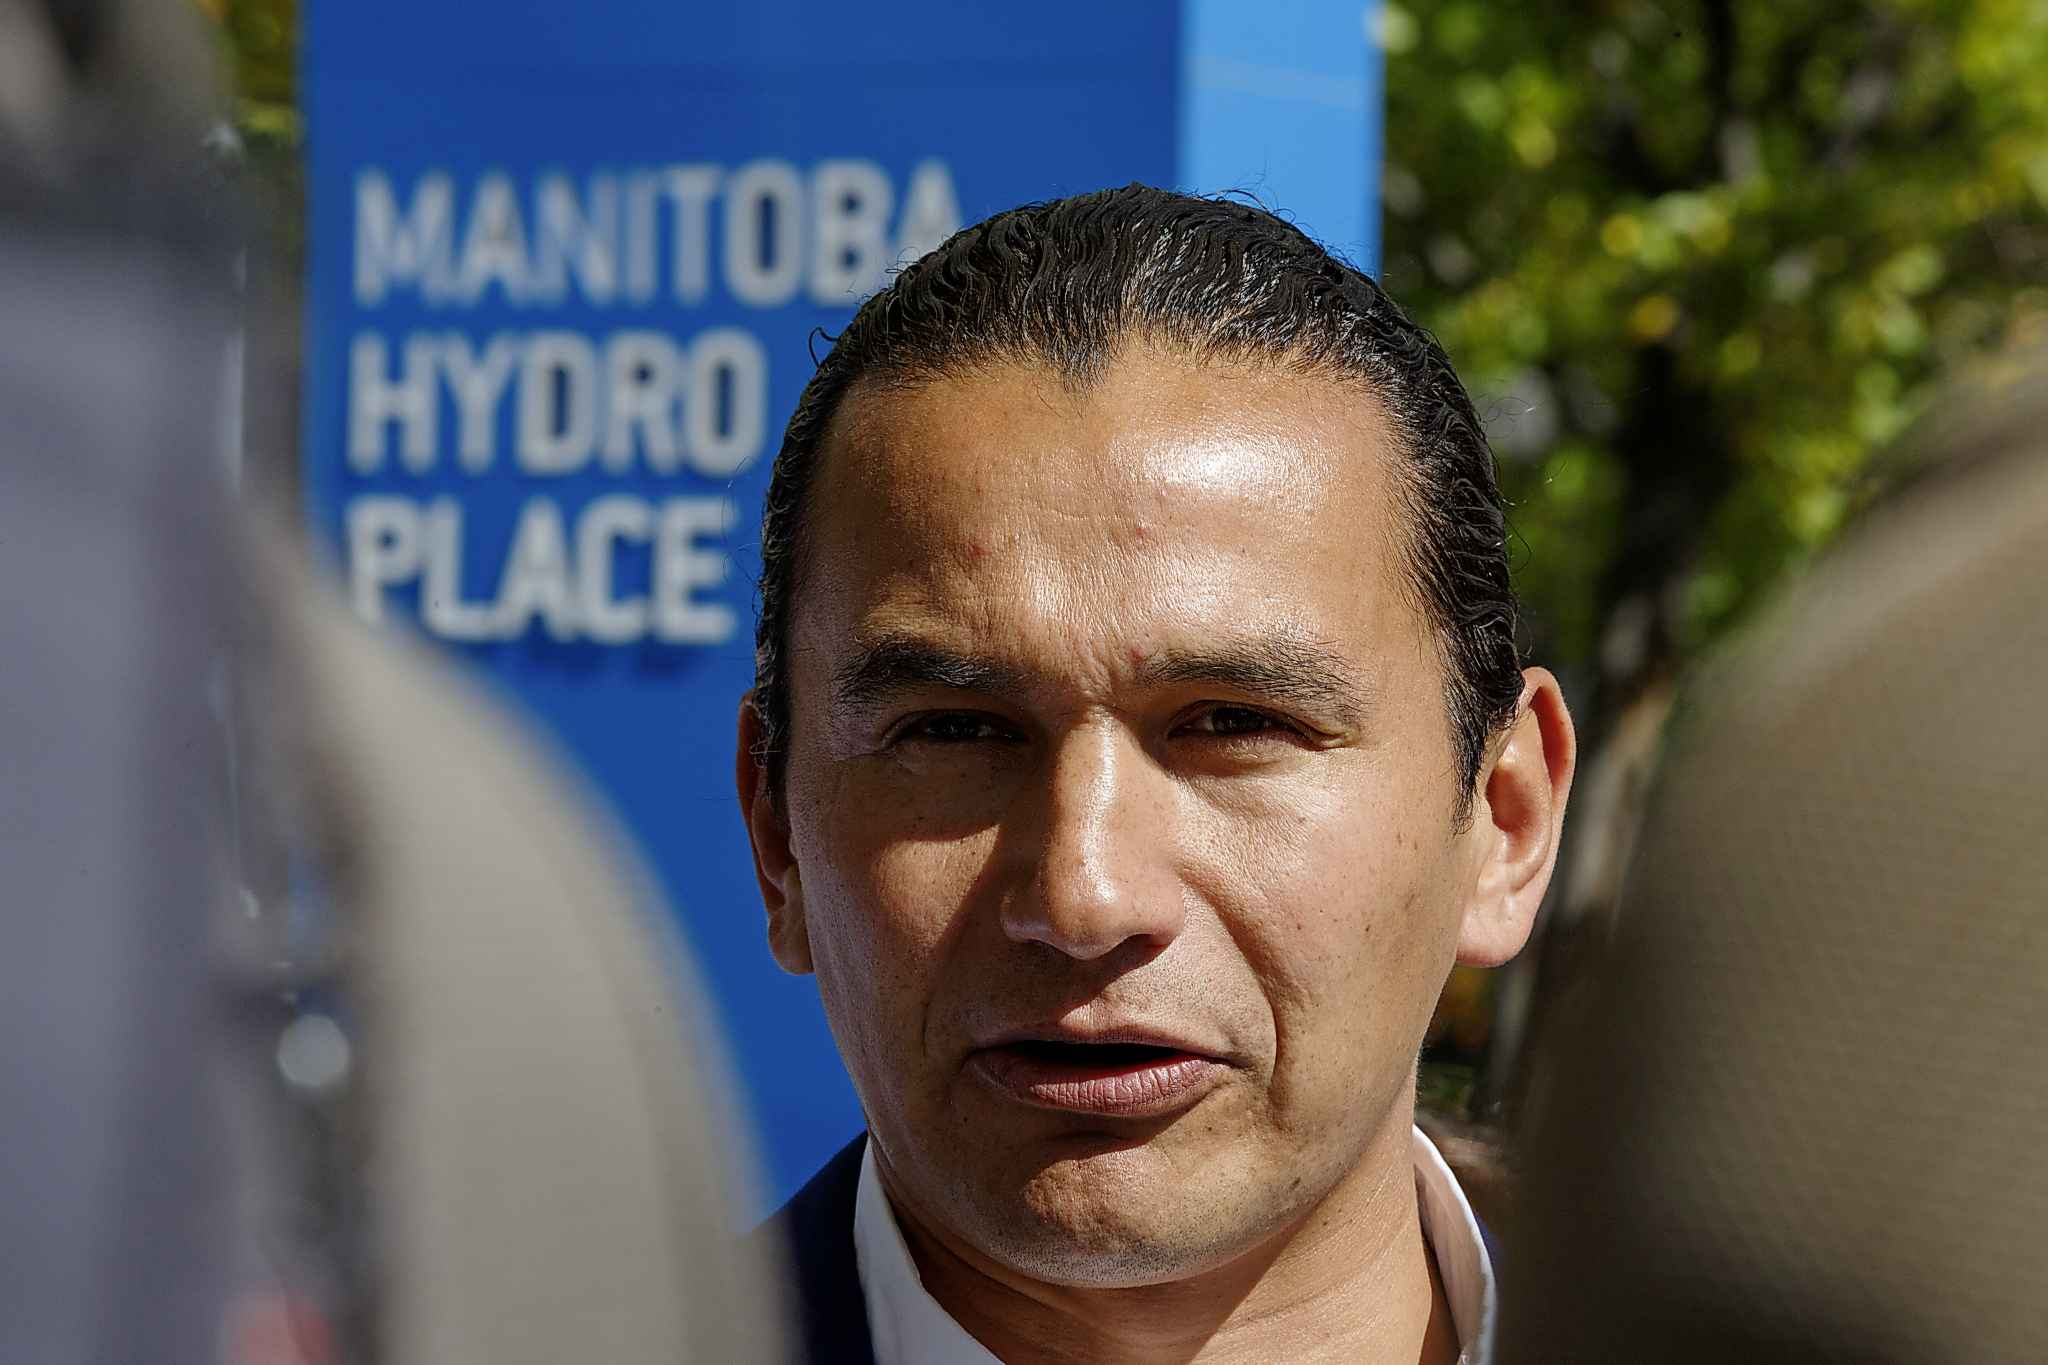 Manitoba NDP Leader Wab Kinew said the announcement of a new review of Manitoba Hydro's operations has raised the spectre that parts or all of Manitoba Hydro will be privatized.